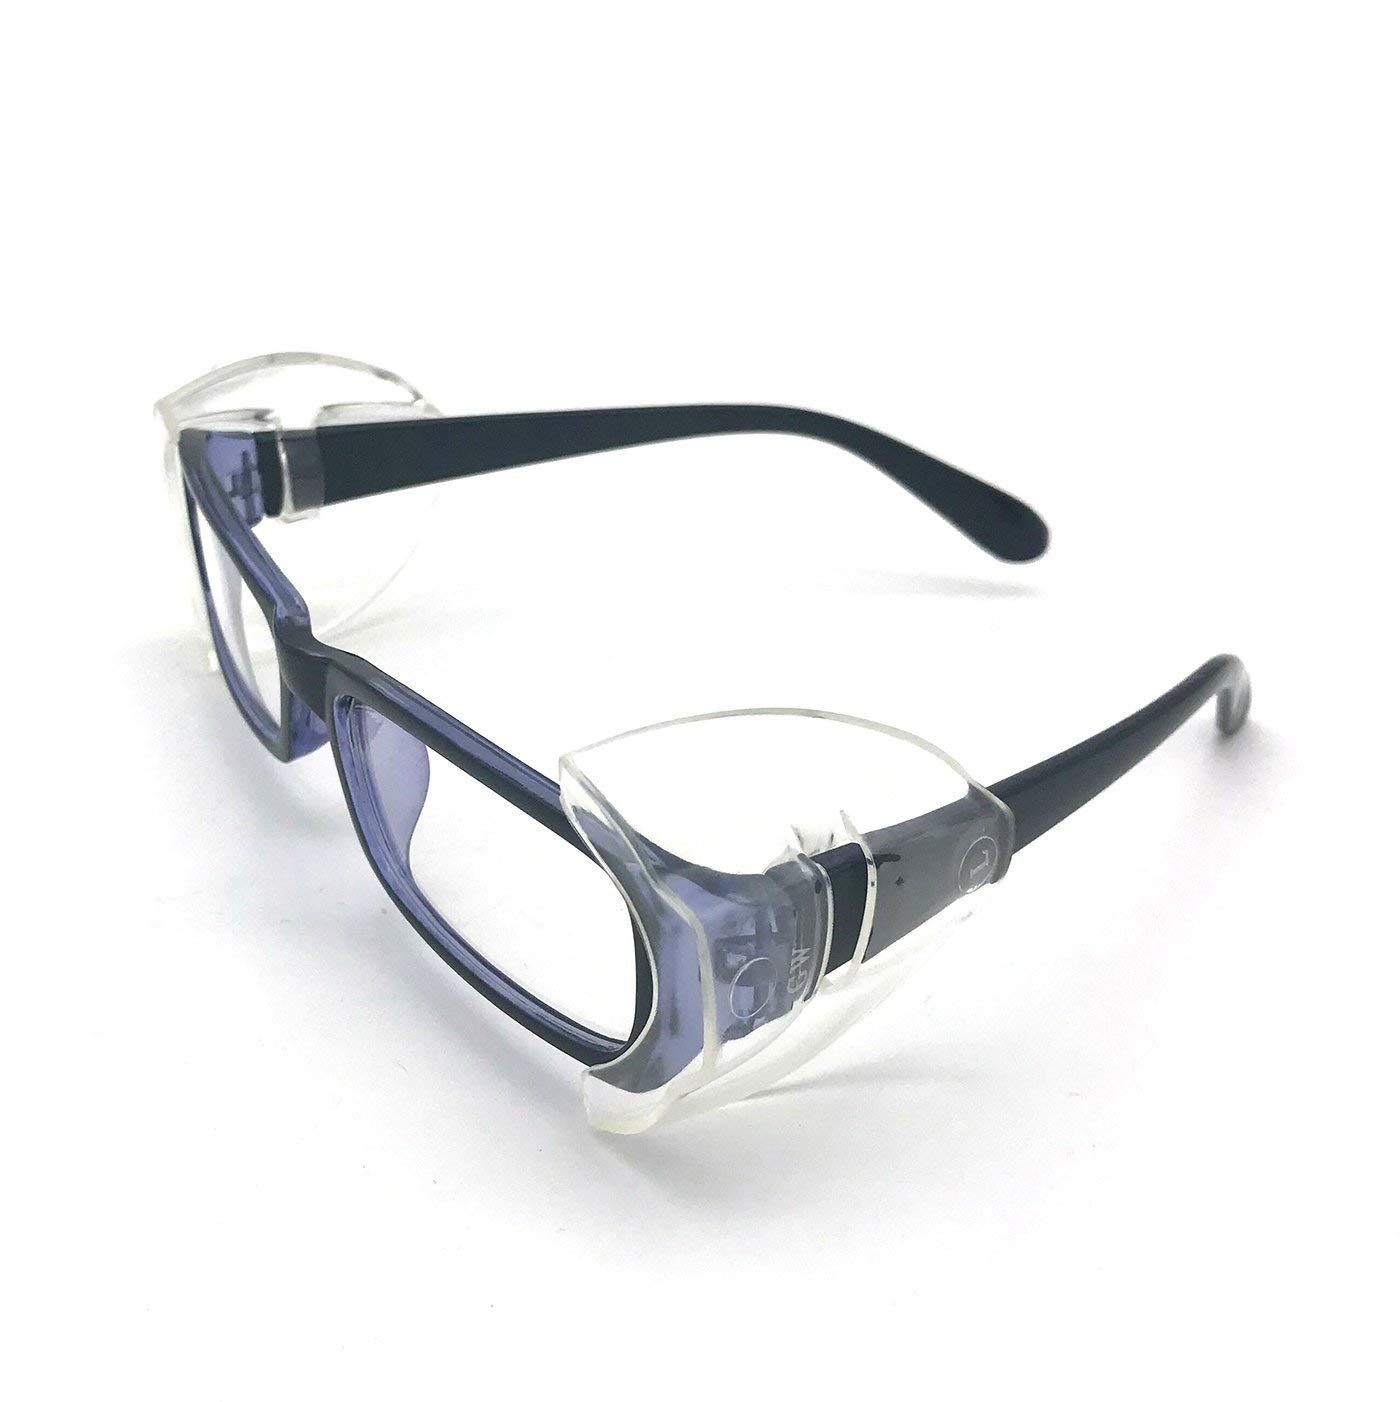 4cb940314d1df Safety Glasses Side Shields Large(6 Pairs)